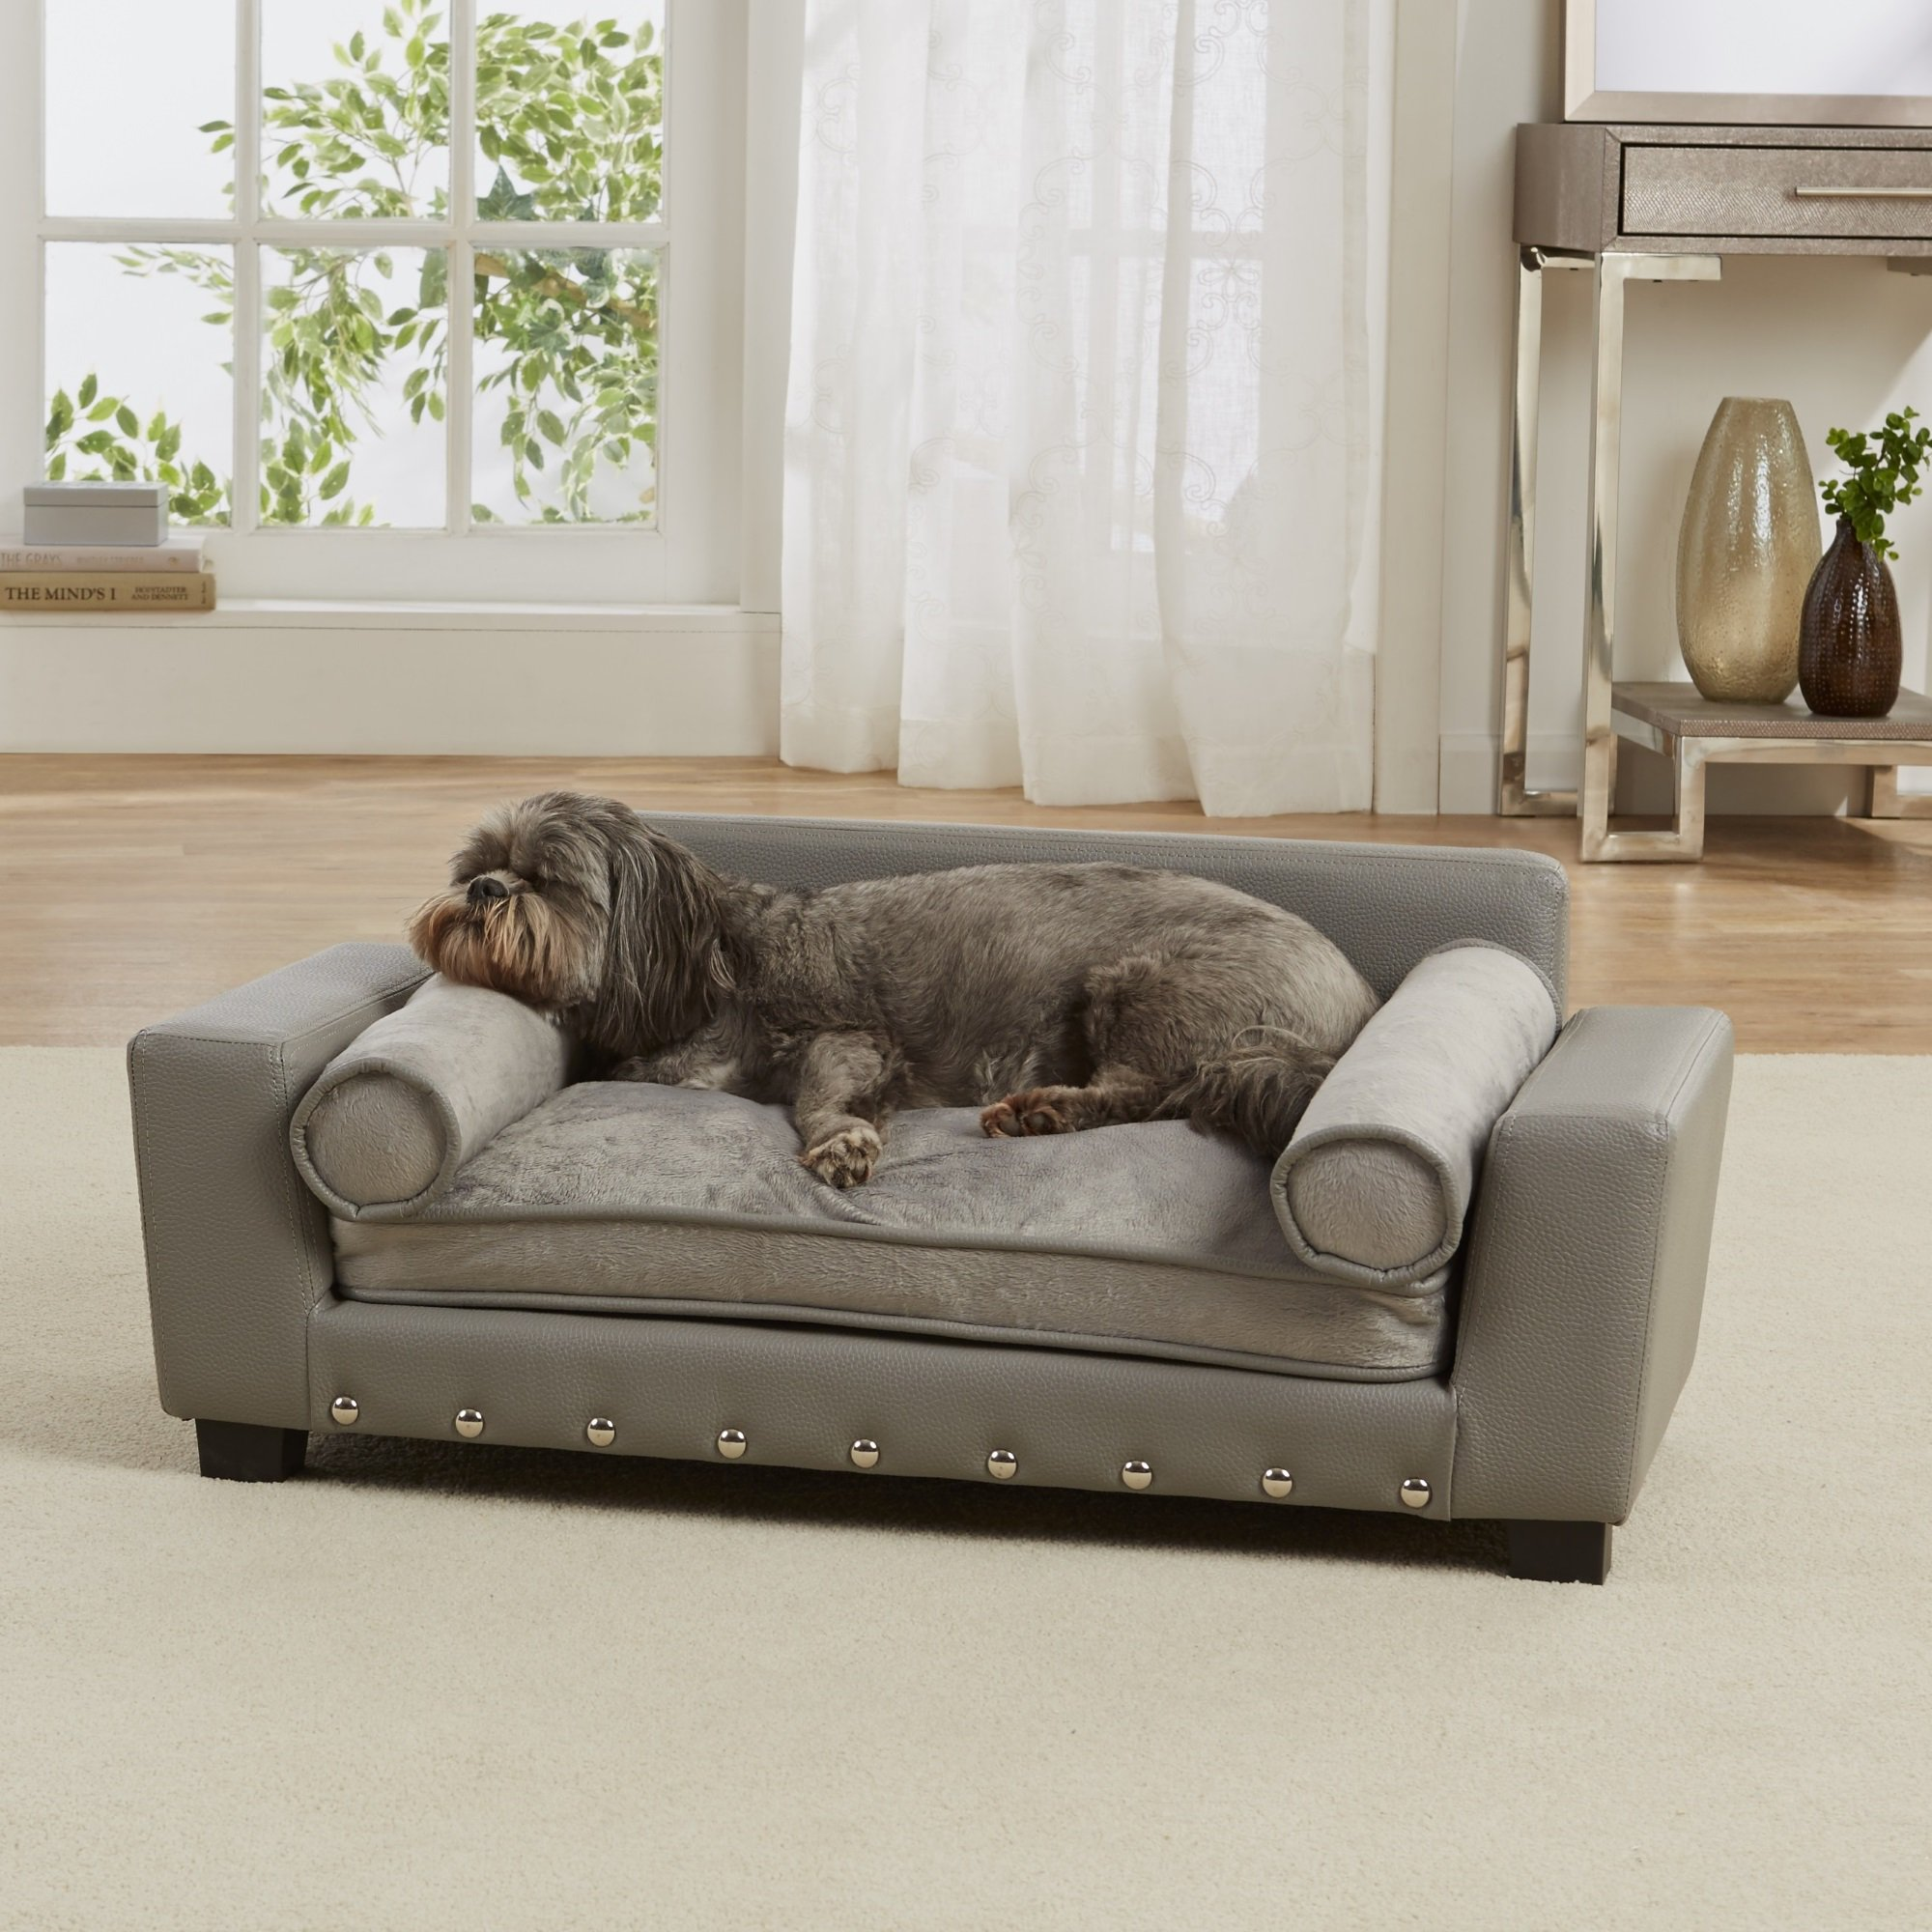 Awesome Dog Beds For Sale